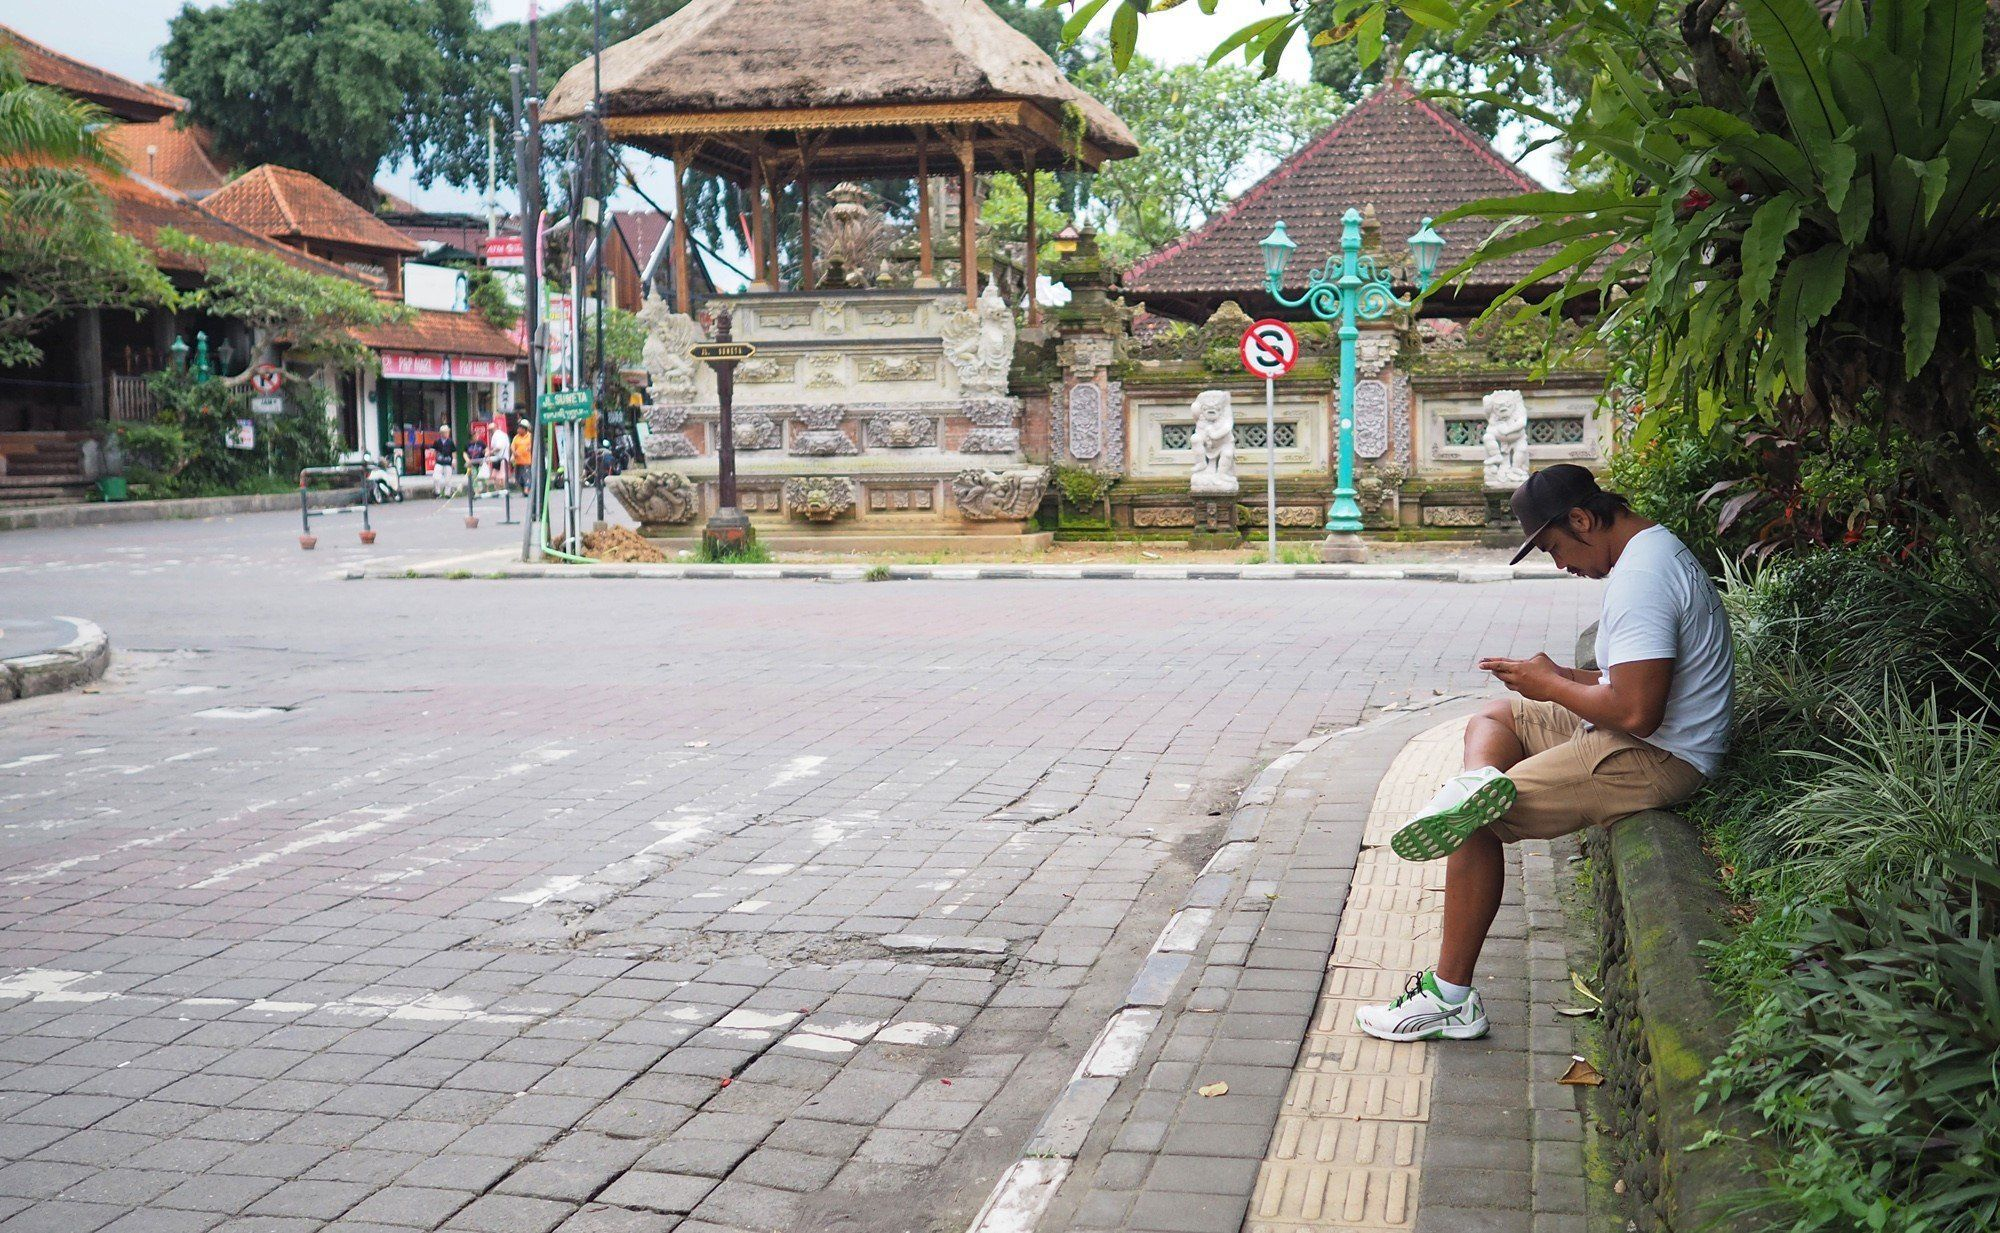 Bali Will Turn Off Its Internet For 24 Hours During New Year